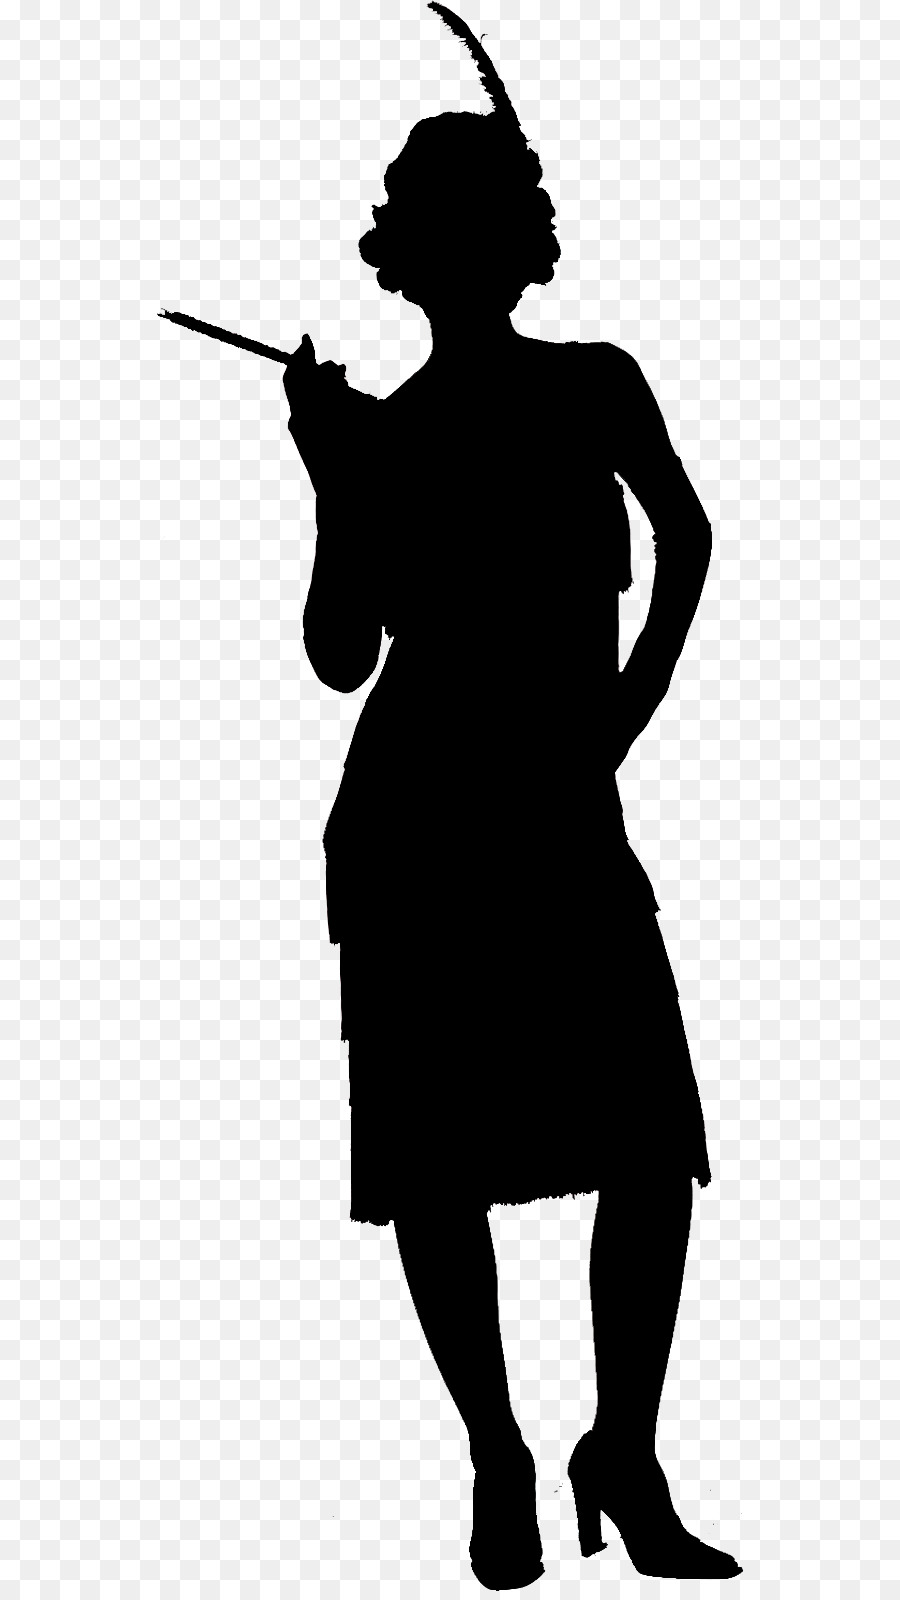 1920 s woman black and white clipart banner transparent stock Woman Cartoon clipart - Fashion, Woman, Black, transparent clip art banner transparent stock